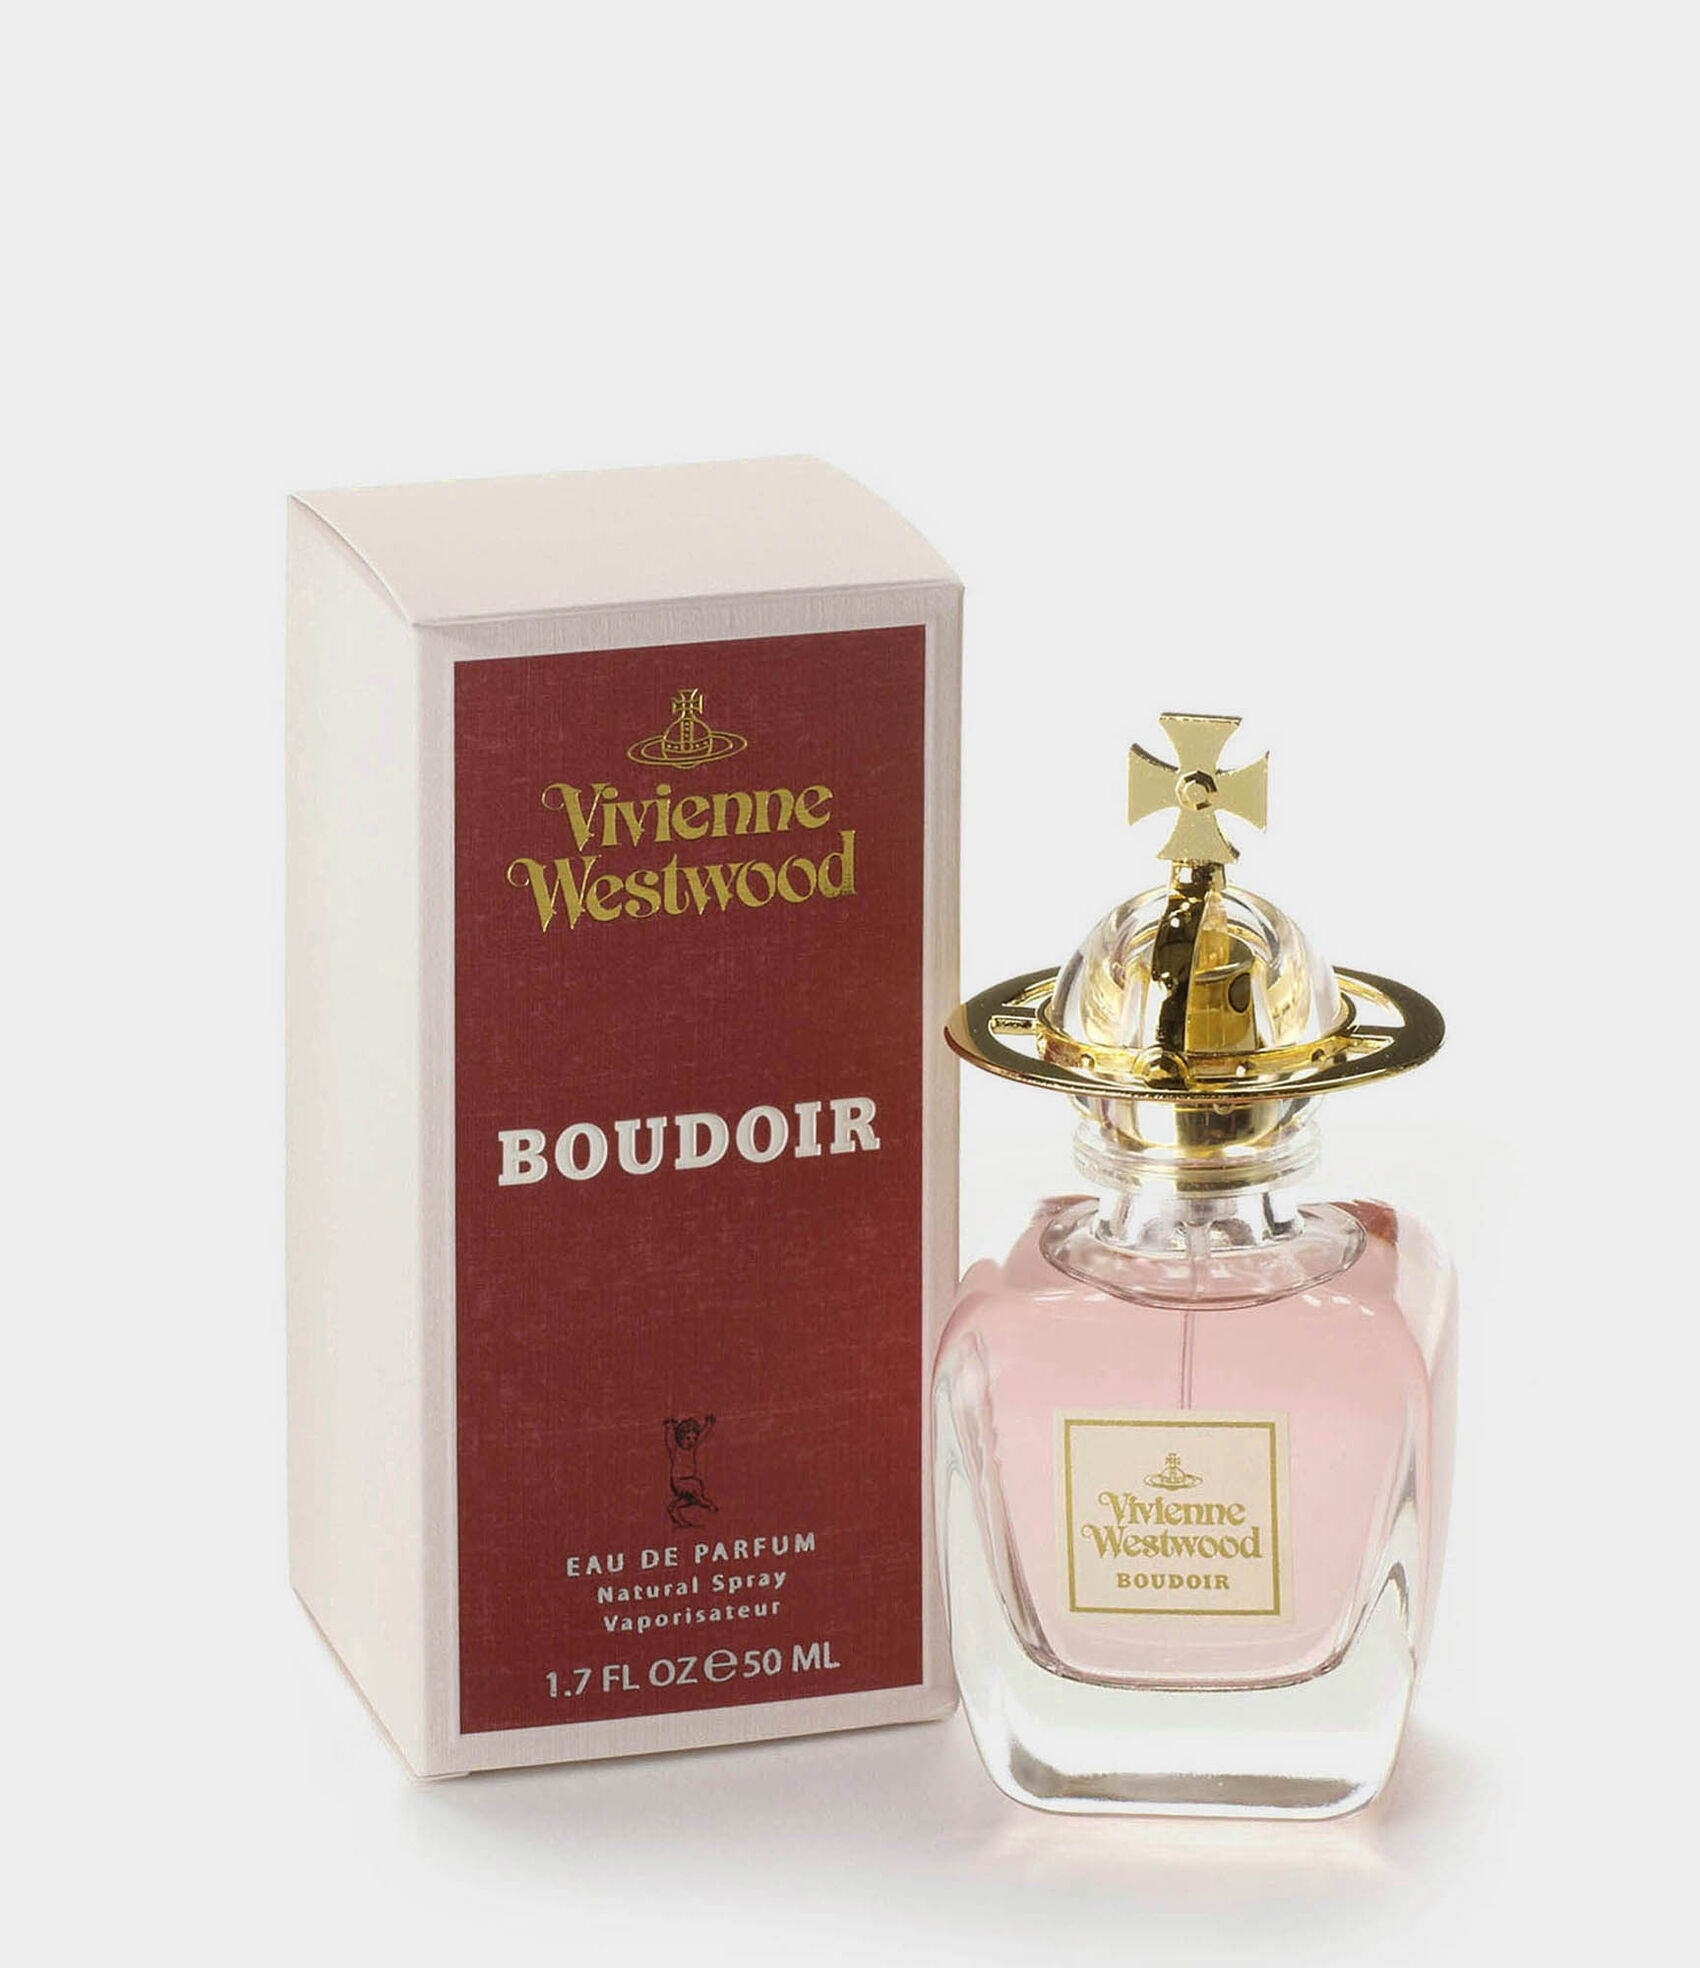 Vivienne Westwood Boudoir 50ml EDP Ladies Pefume